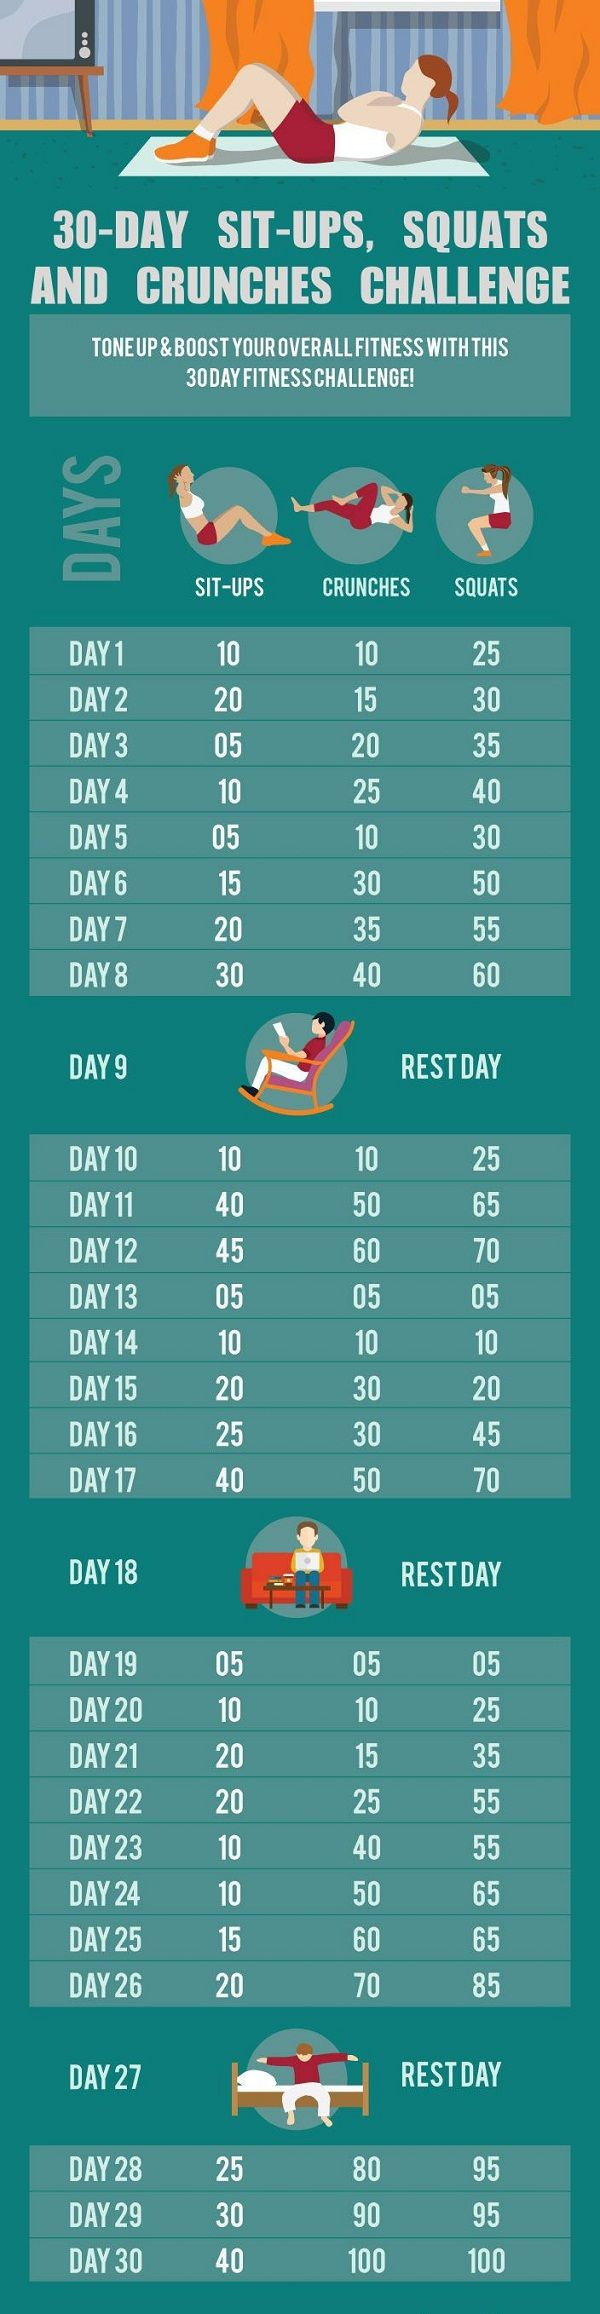 30-Day-Sit-ups-Squats-and-Crunches-Challenge.jpg (600×2314)